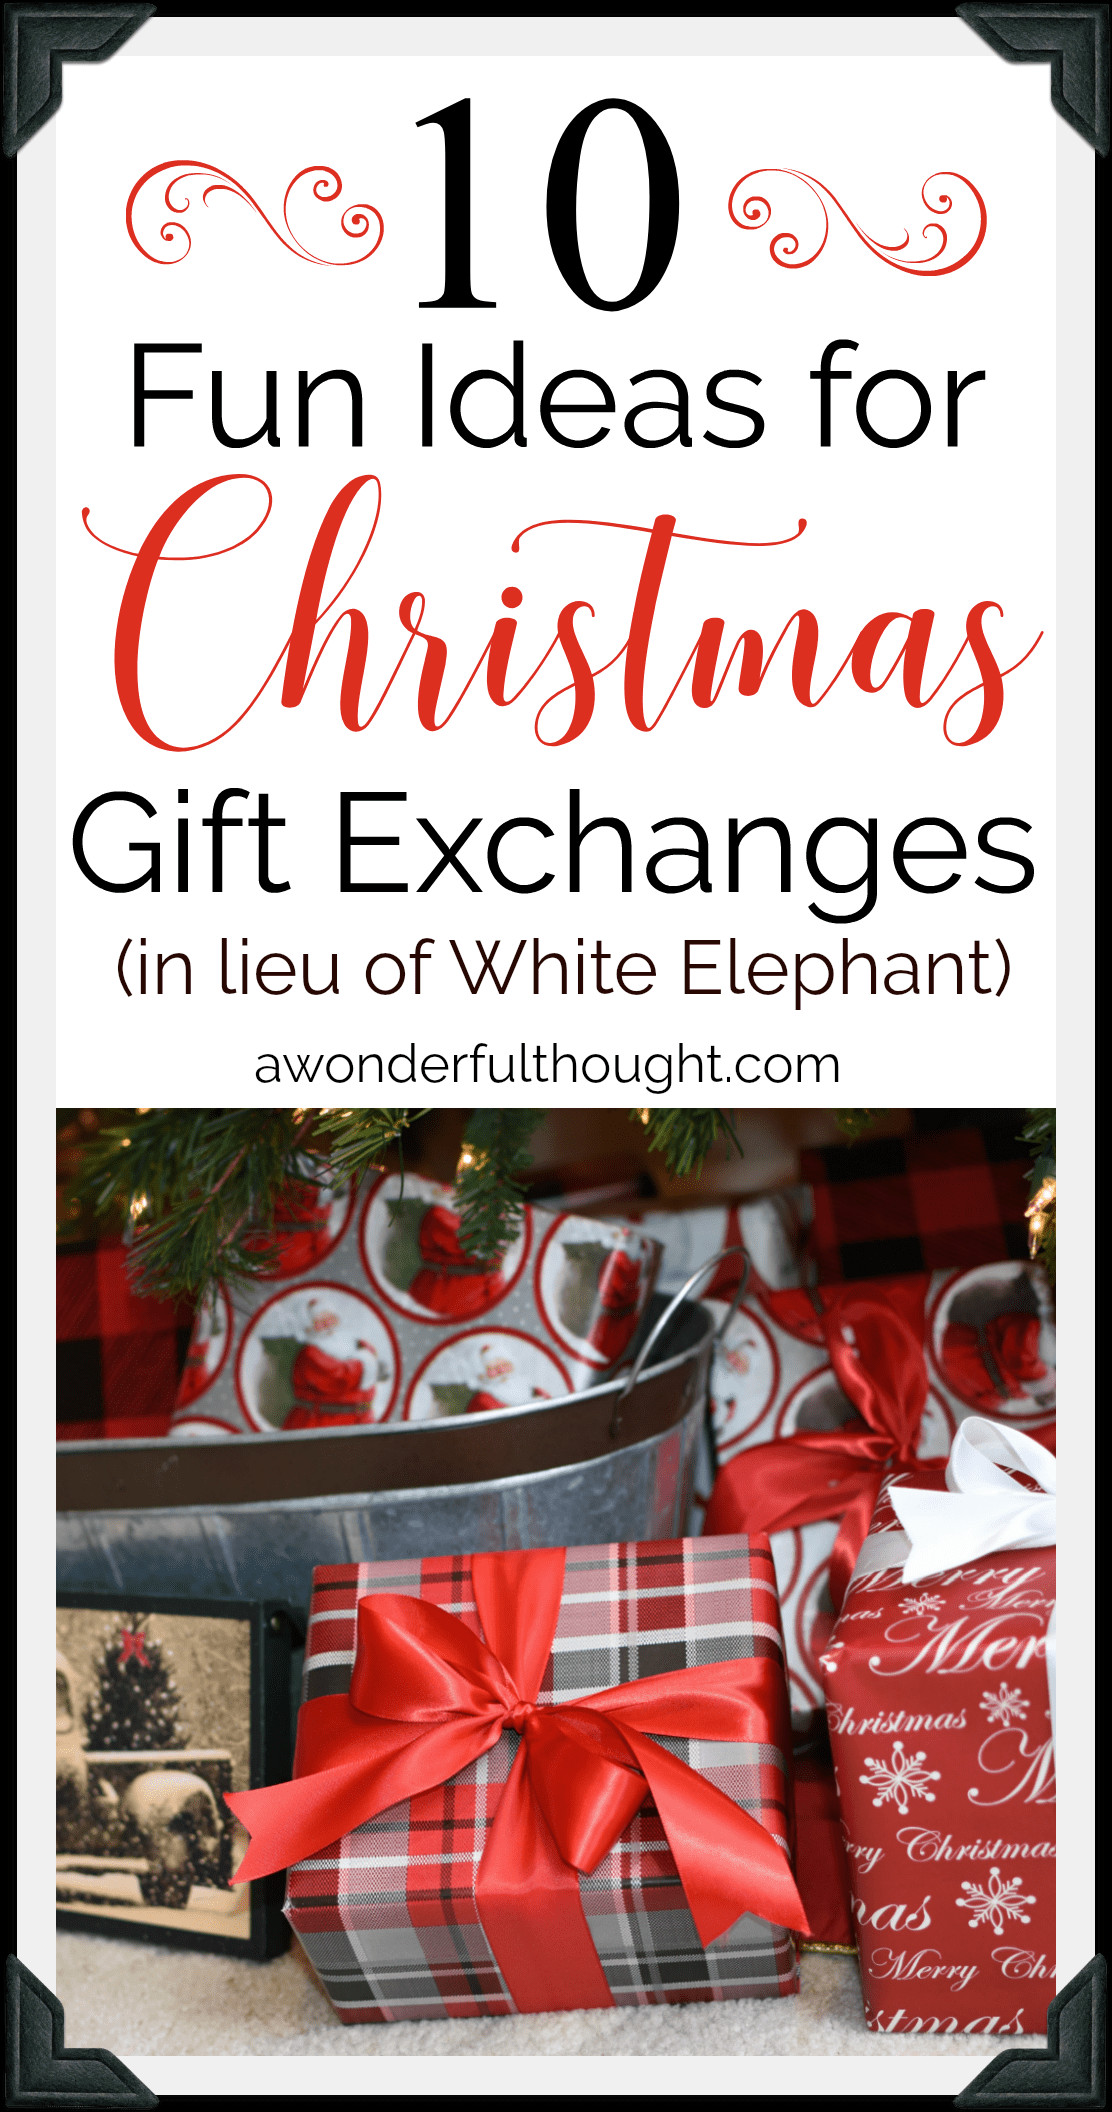 Best ideas about Funny Gift Exchange Ideas . Save or Pin Christmas Gift Exchange Ideas A Wonderful Thought Now.